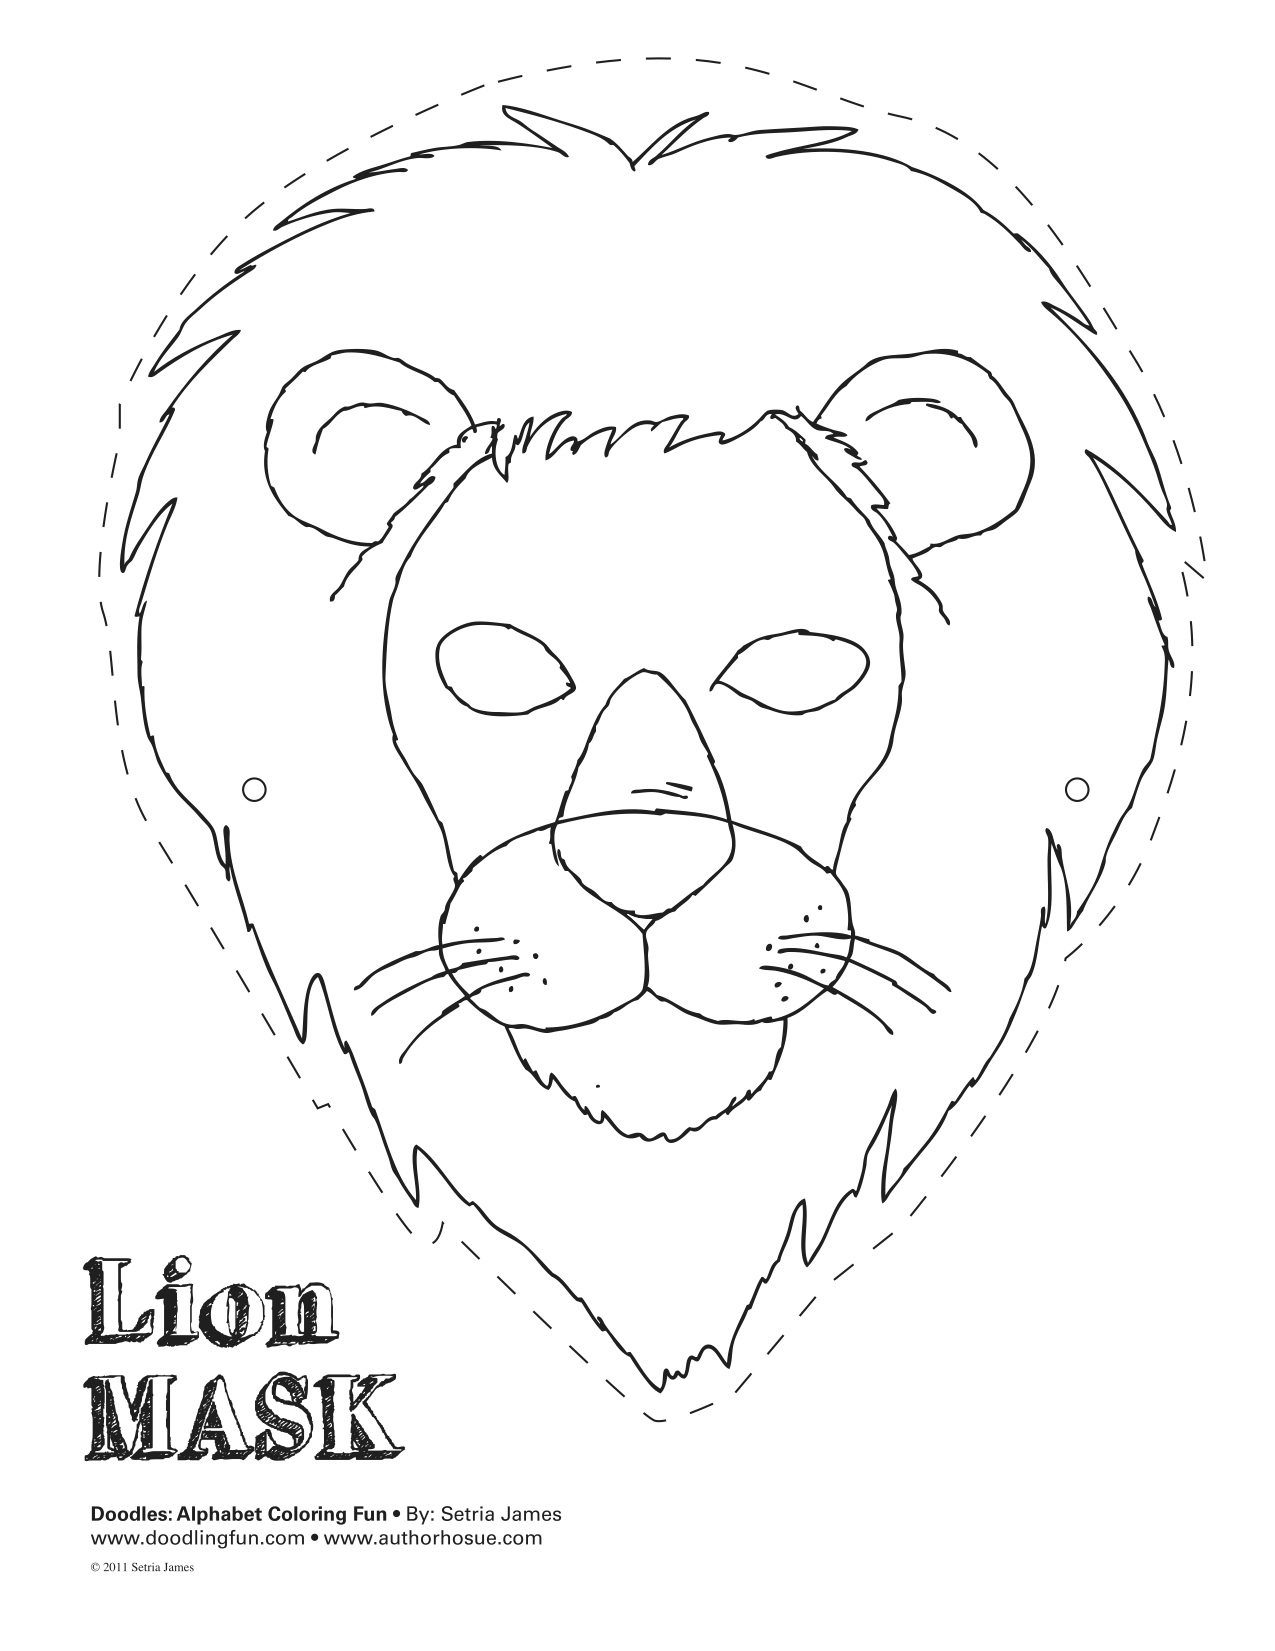 Slobbery image in lion mask printable